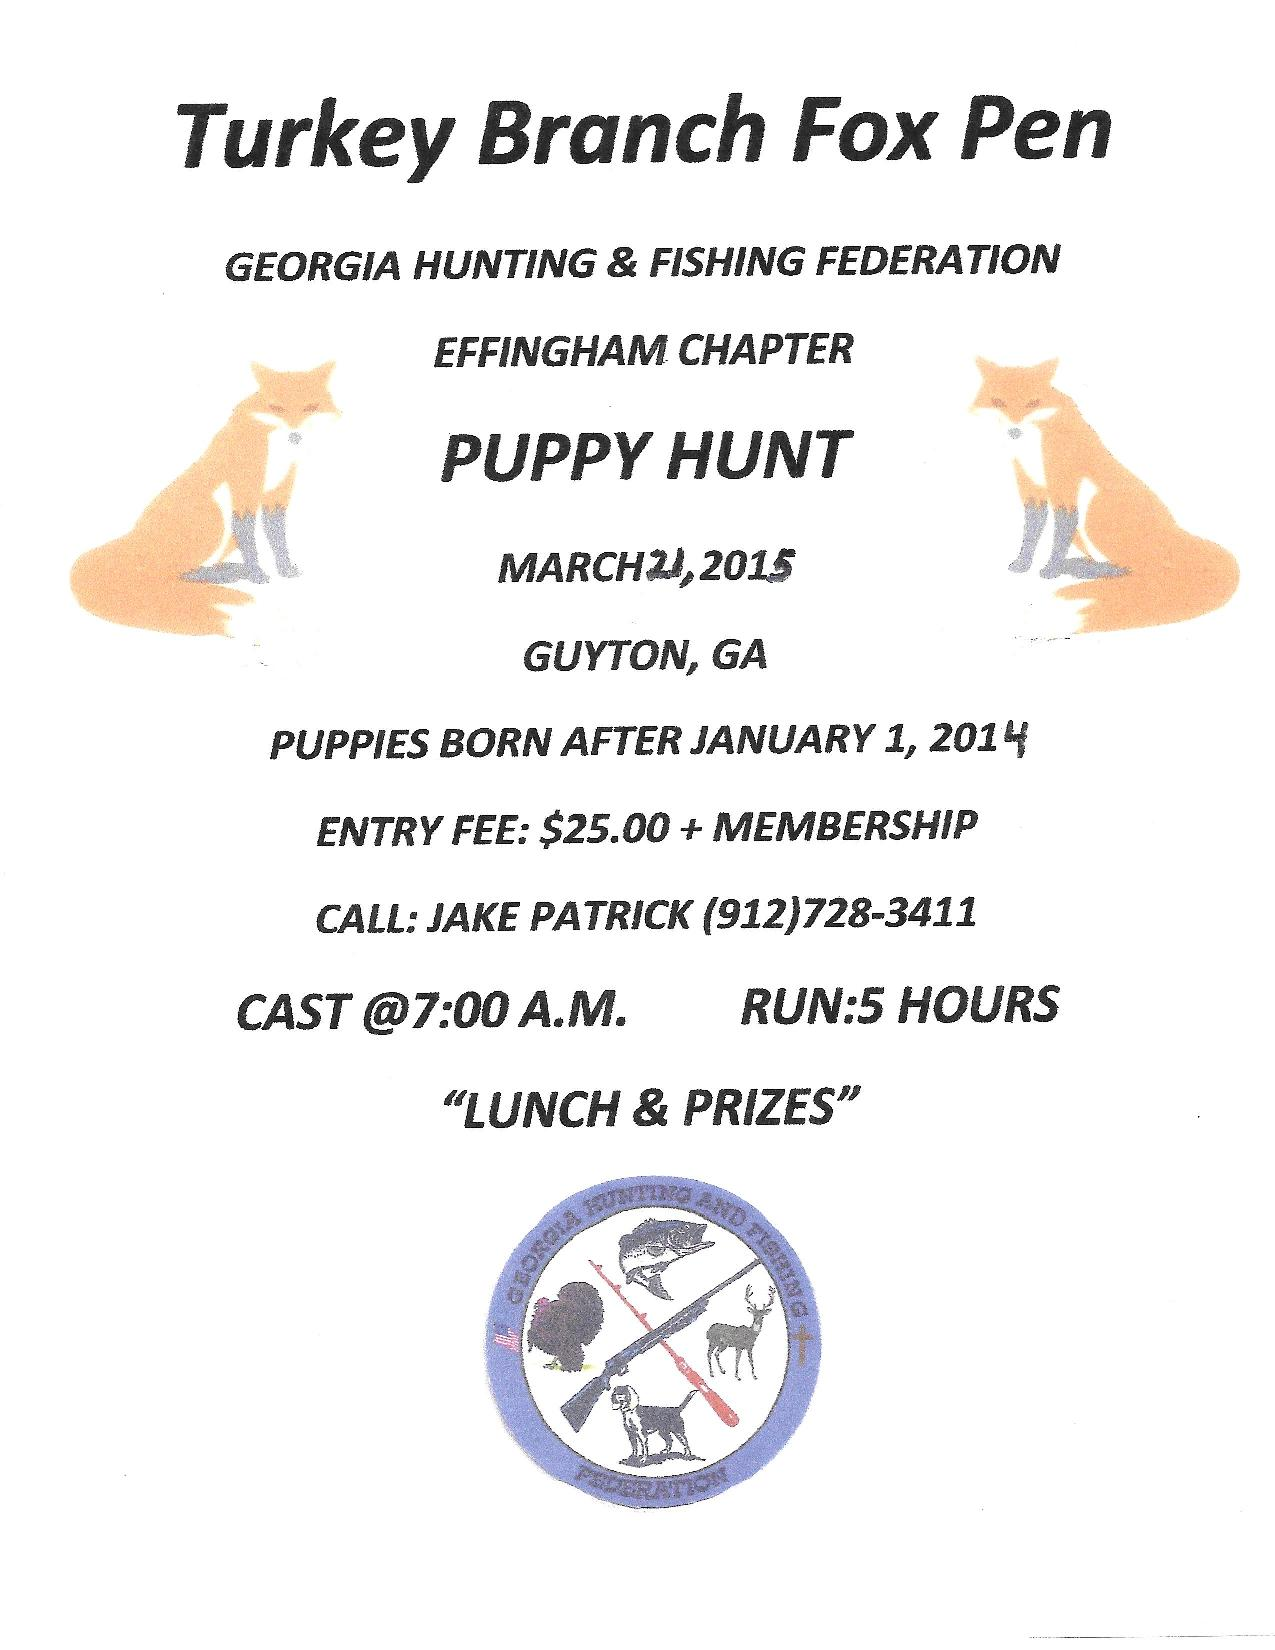 GHFF Effingham Chapter Puppy Hunt March 21st 2015